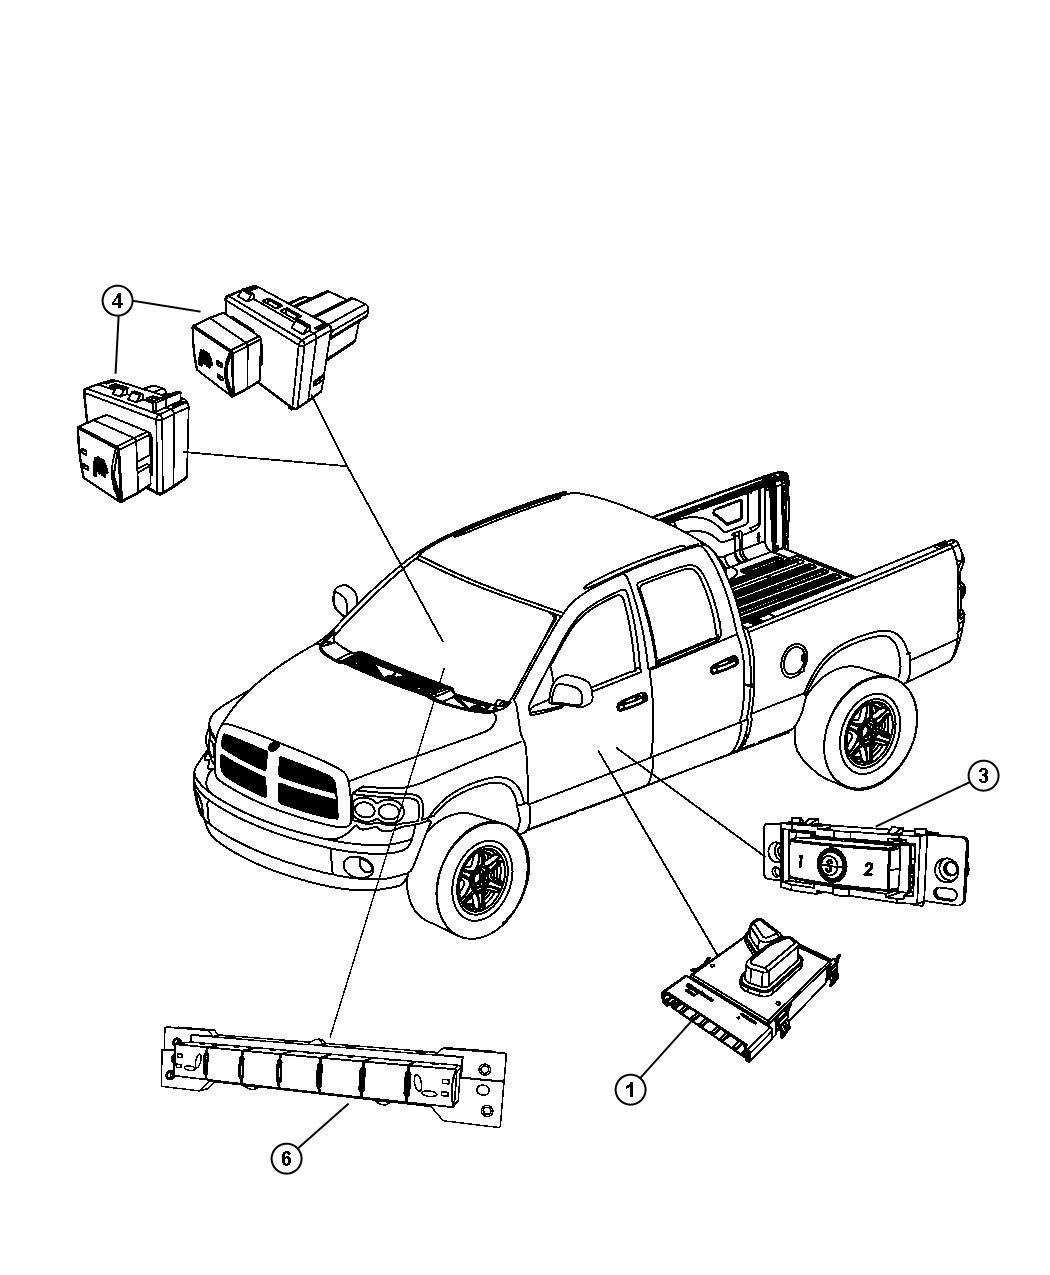 top suggestions 02 ford e350 fuse box :